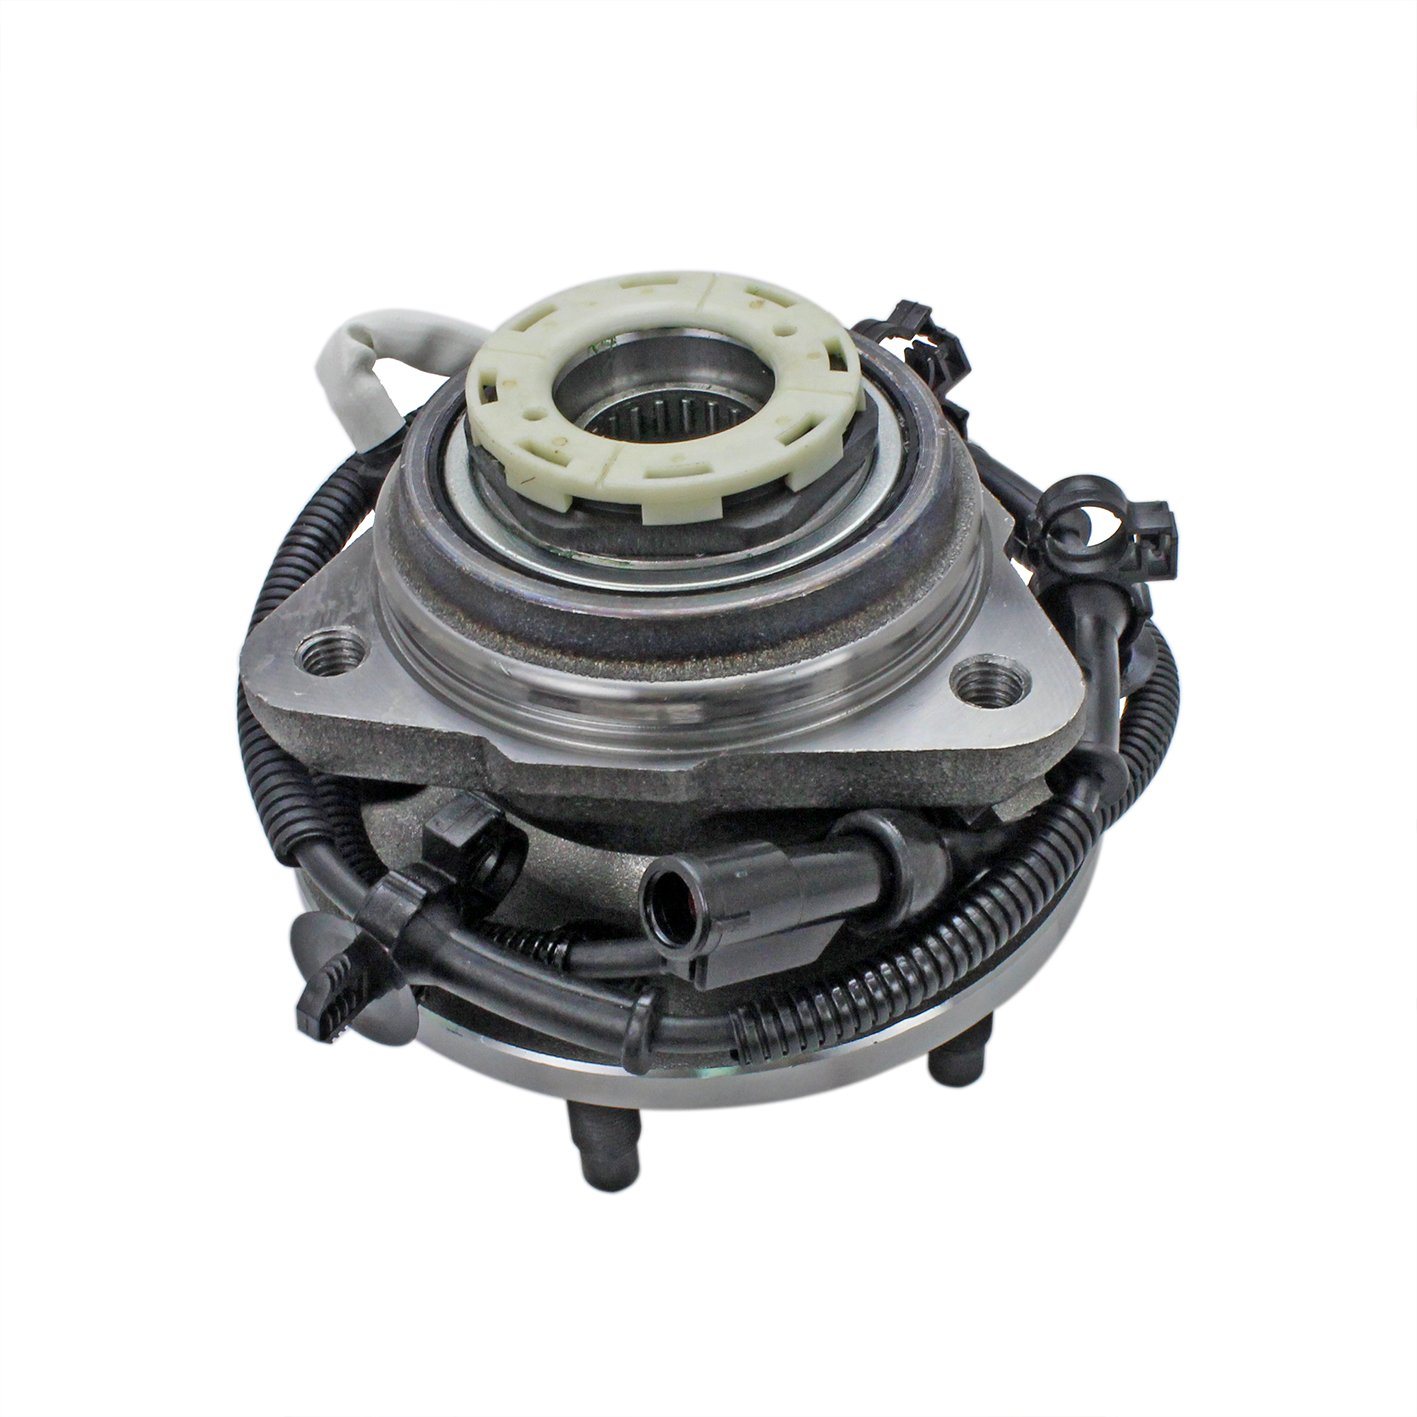 CRS NT515027 New Wheel Bearing Hub Assembly, Front Left (Driver)/ Right (Passenger), for 1998-2000 Ford Ranger, Mazda B3000/ B4000, w/4 Wheel, ABS, 4WD by CRS